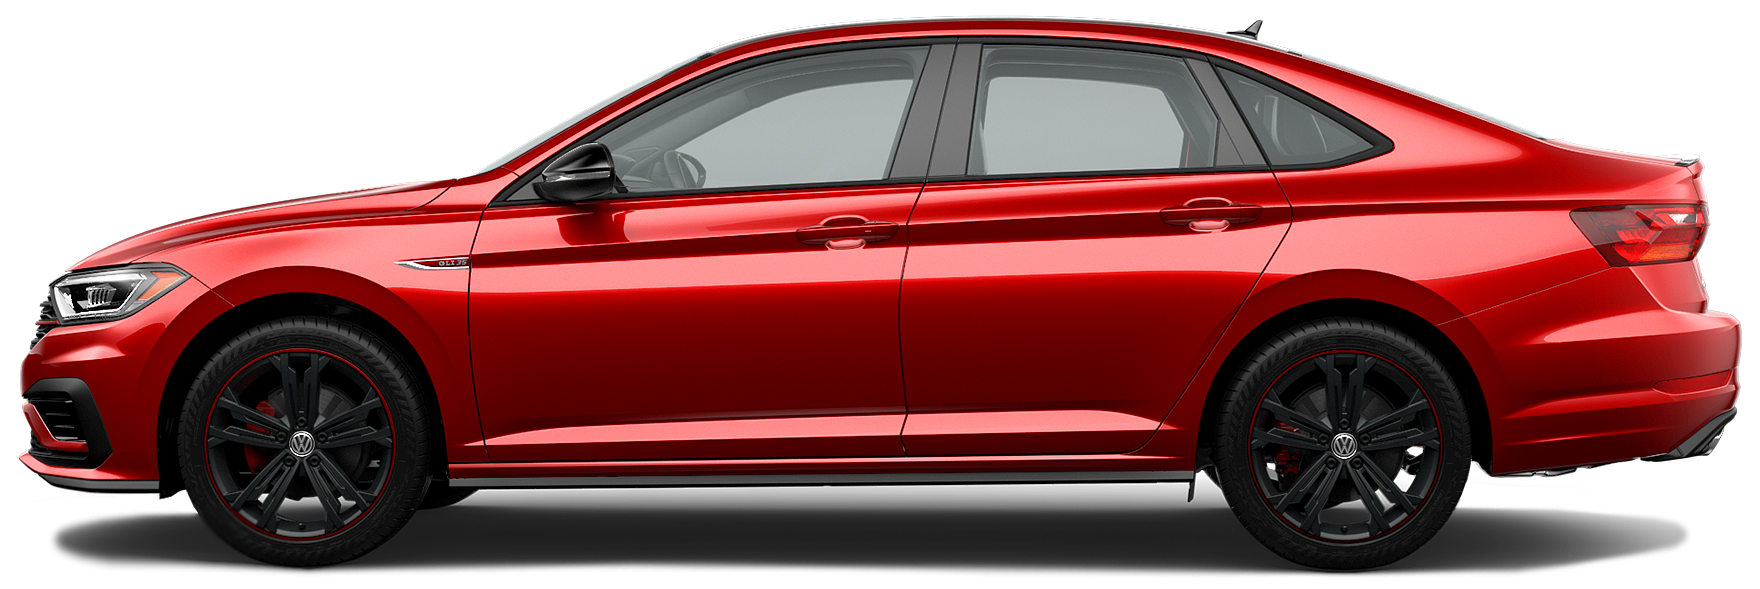 2019 Volkswagen Jetta GLI Sedan 2.0T 35th Anniversary Edition